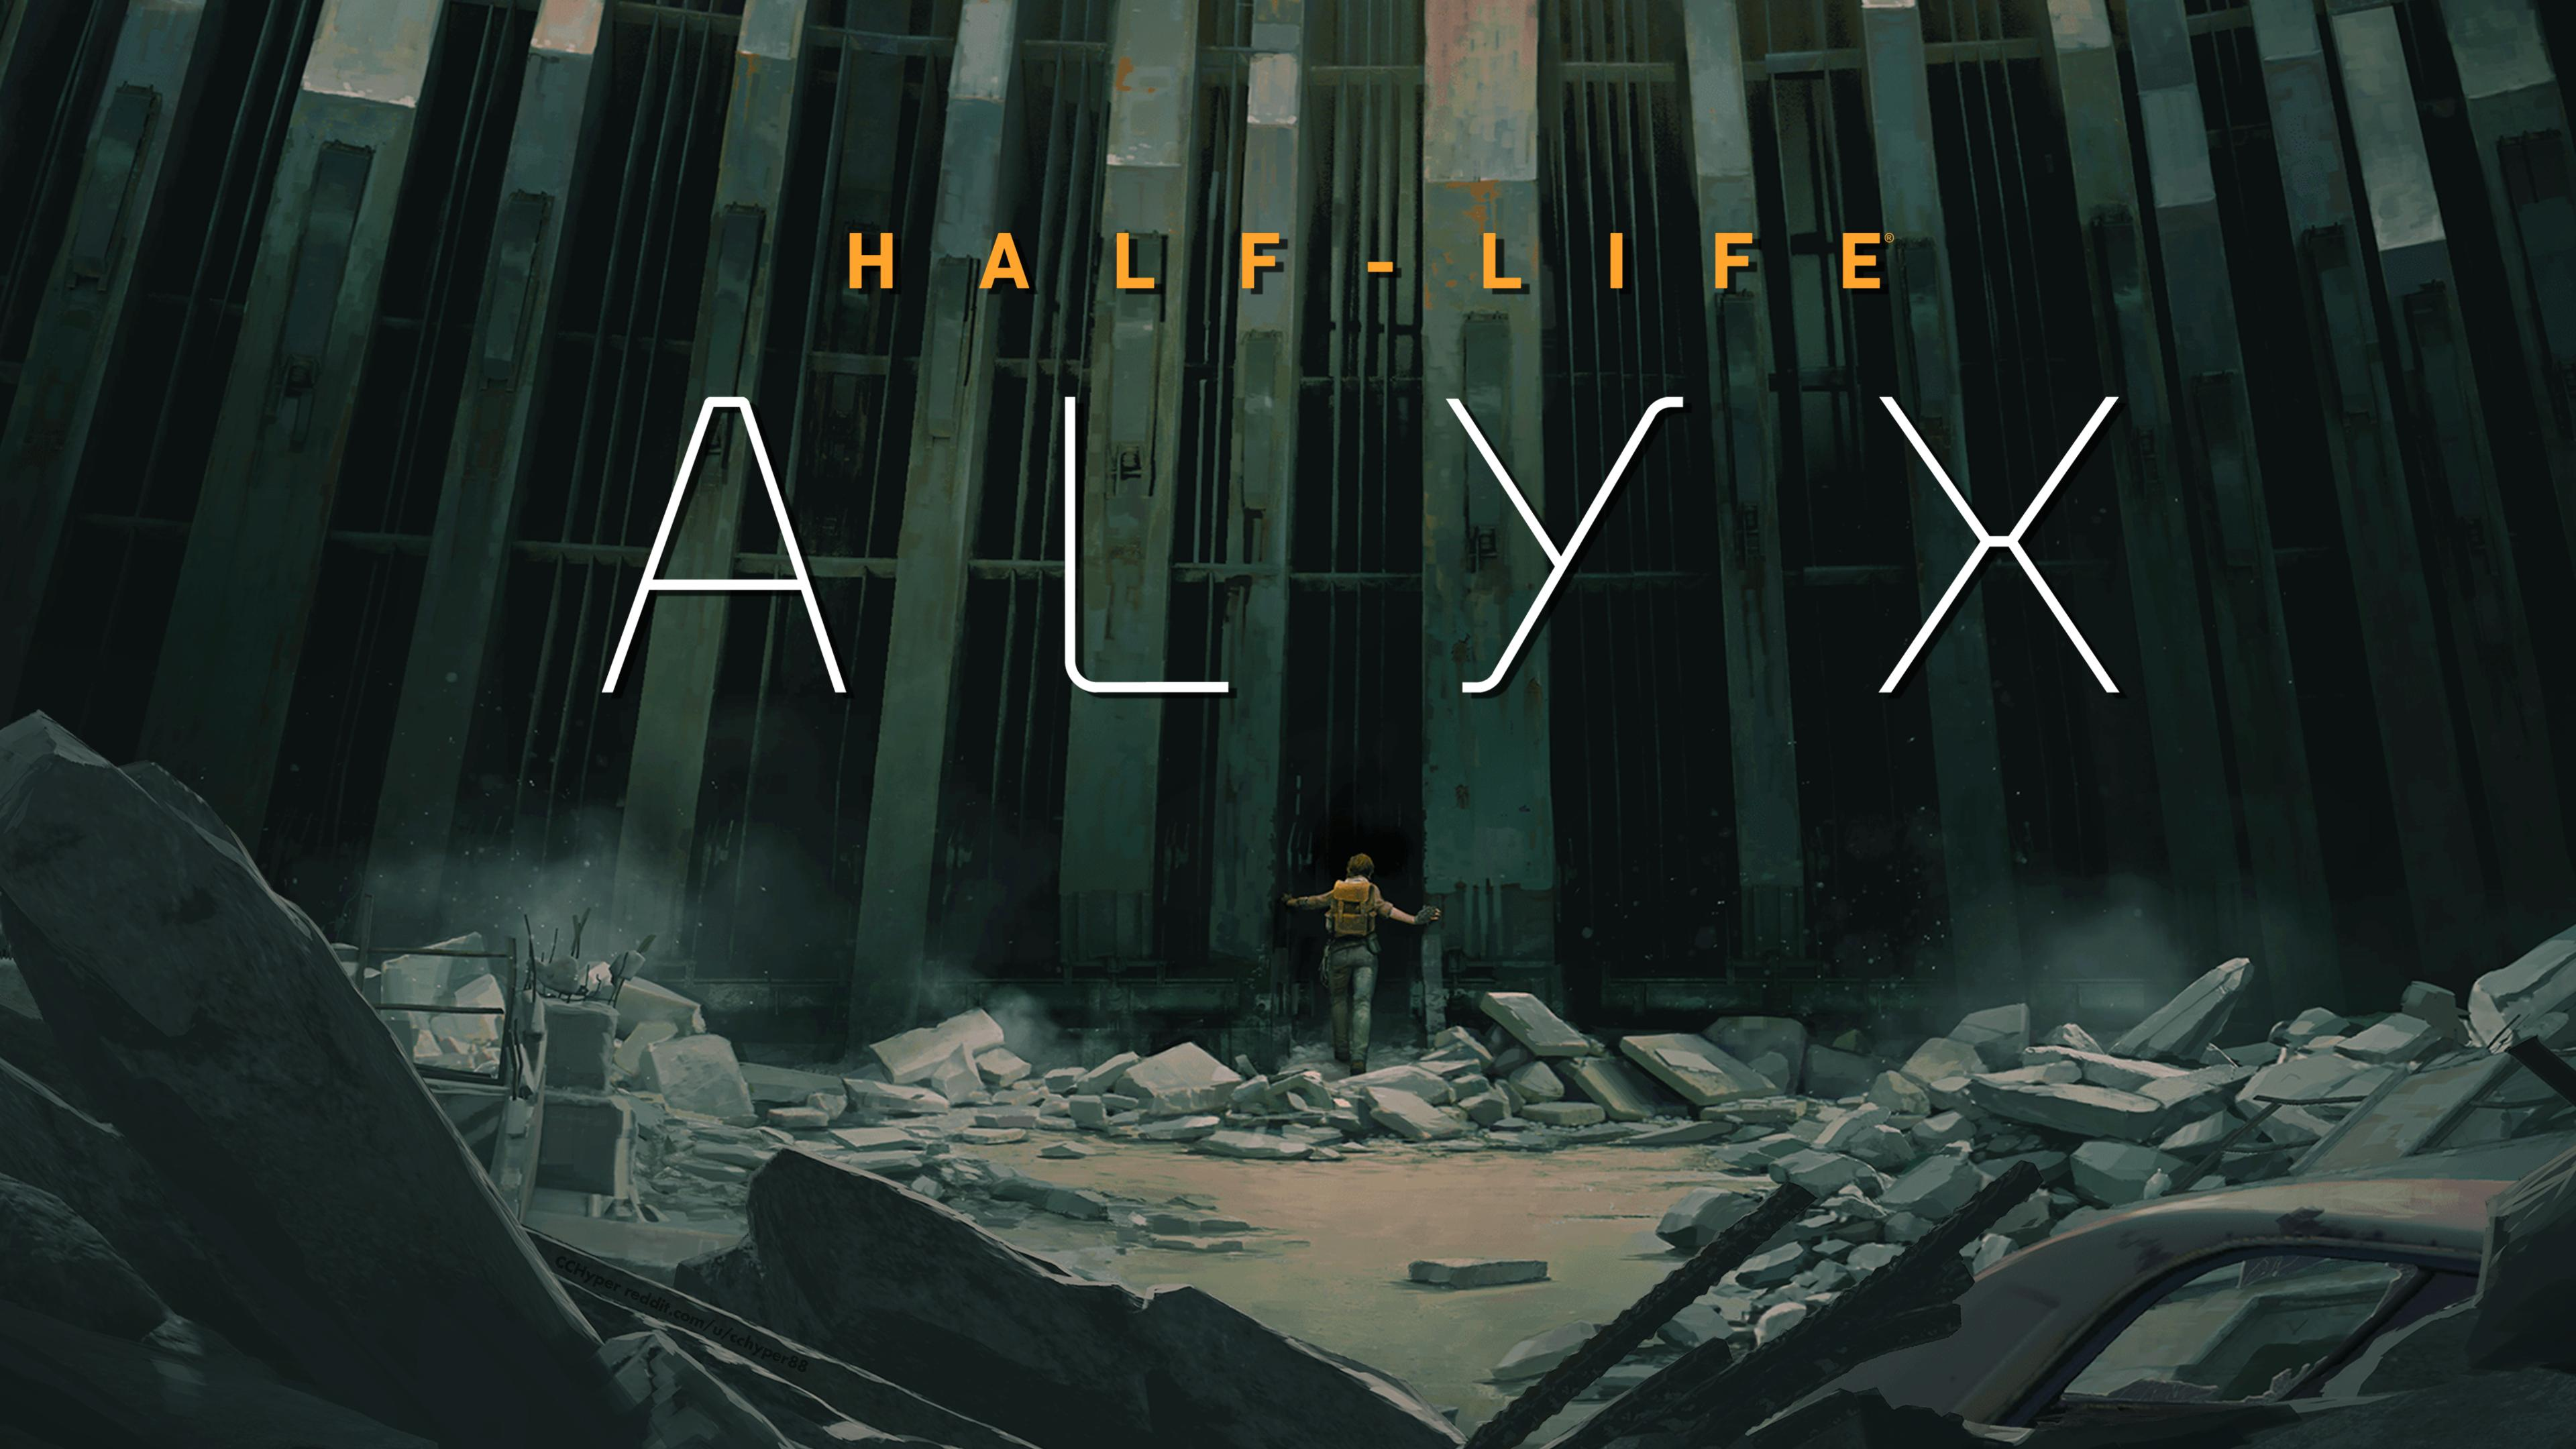 Half Life Alyx Hd Wallpapers Wallpaper Cave